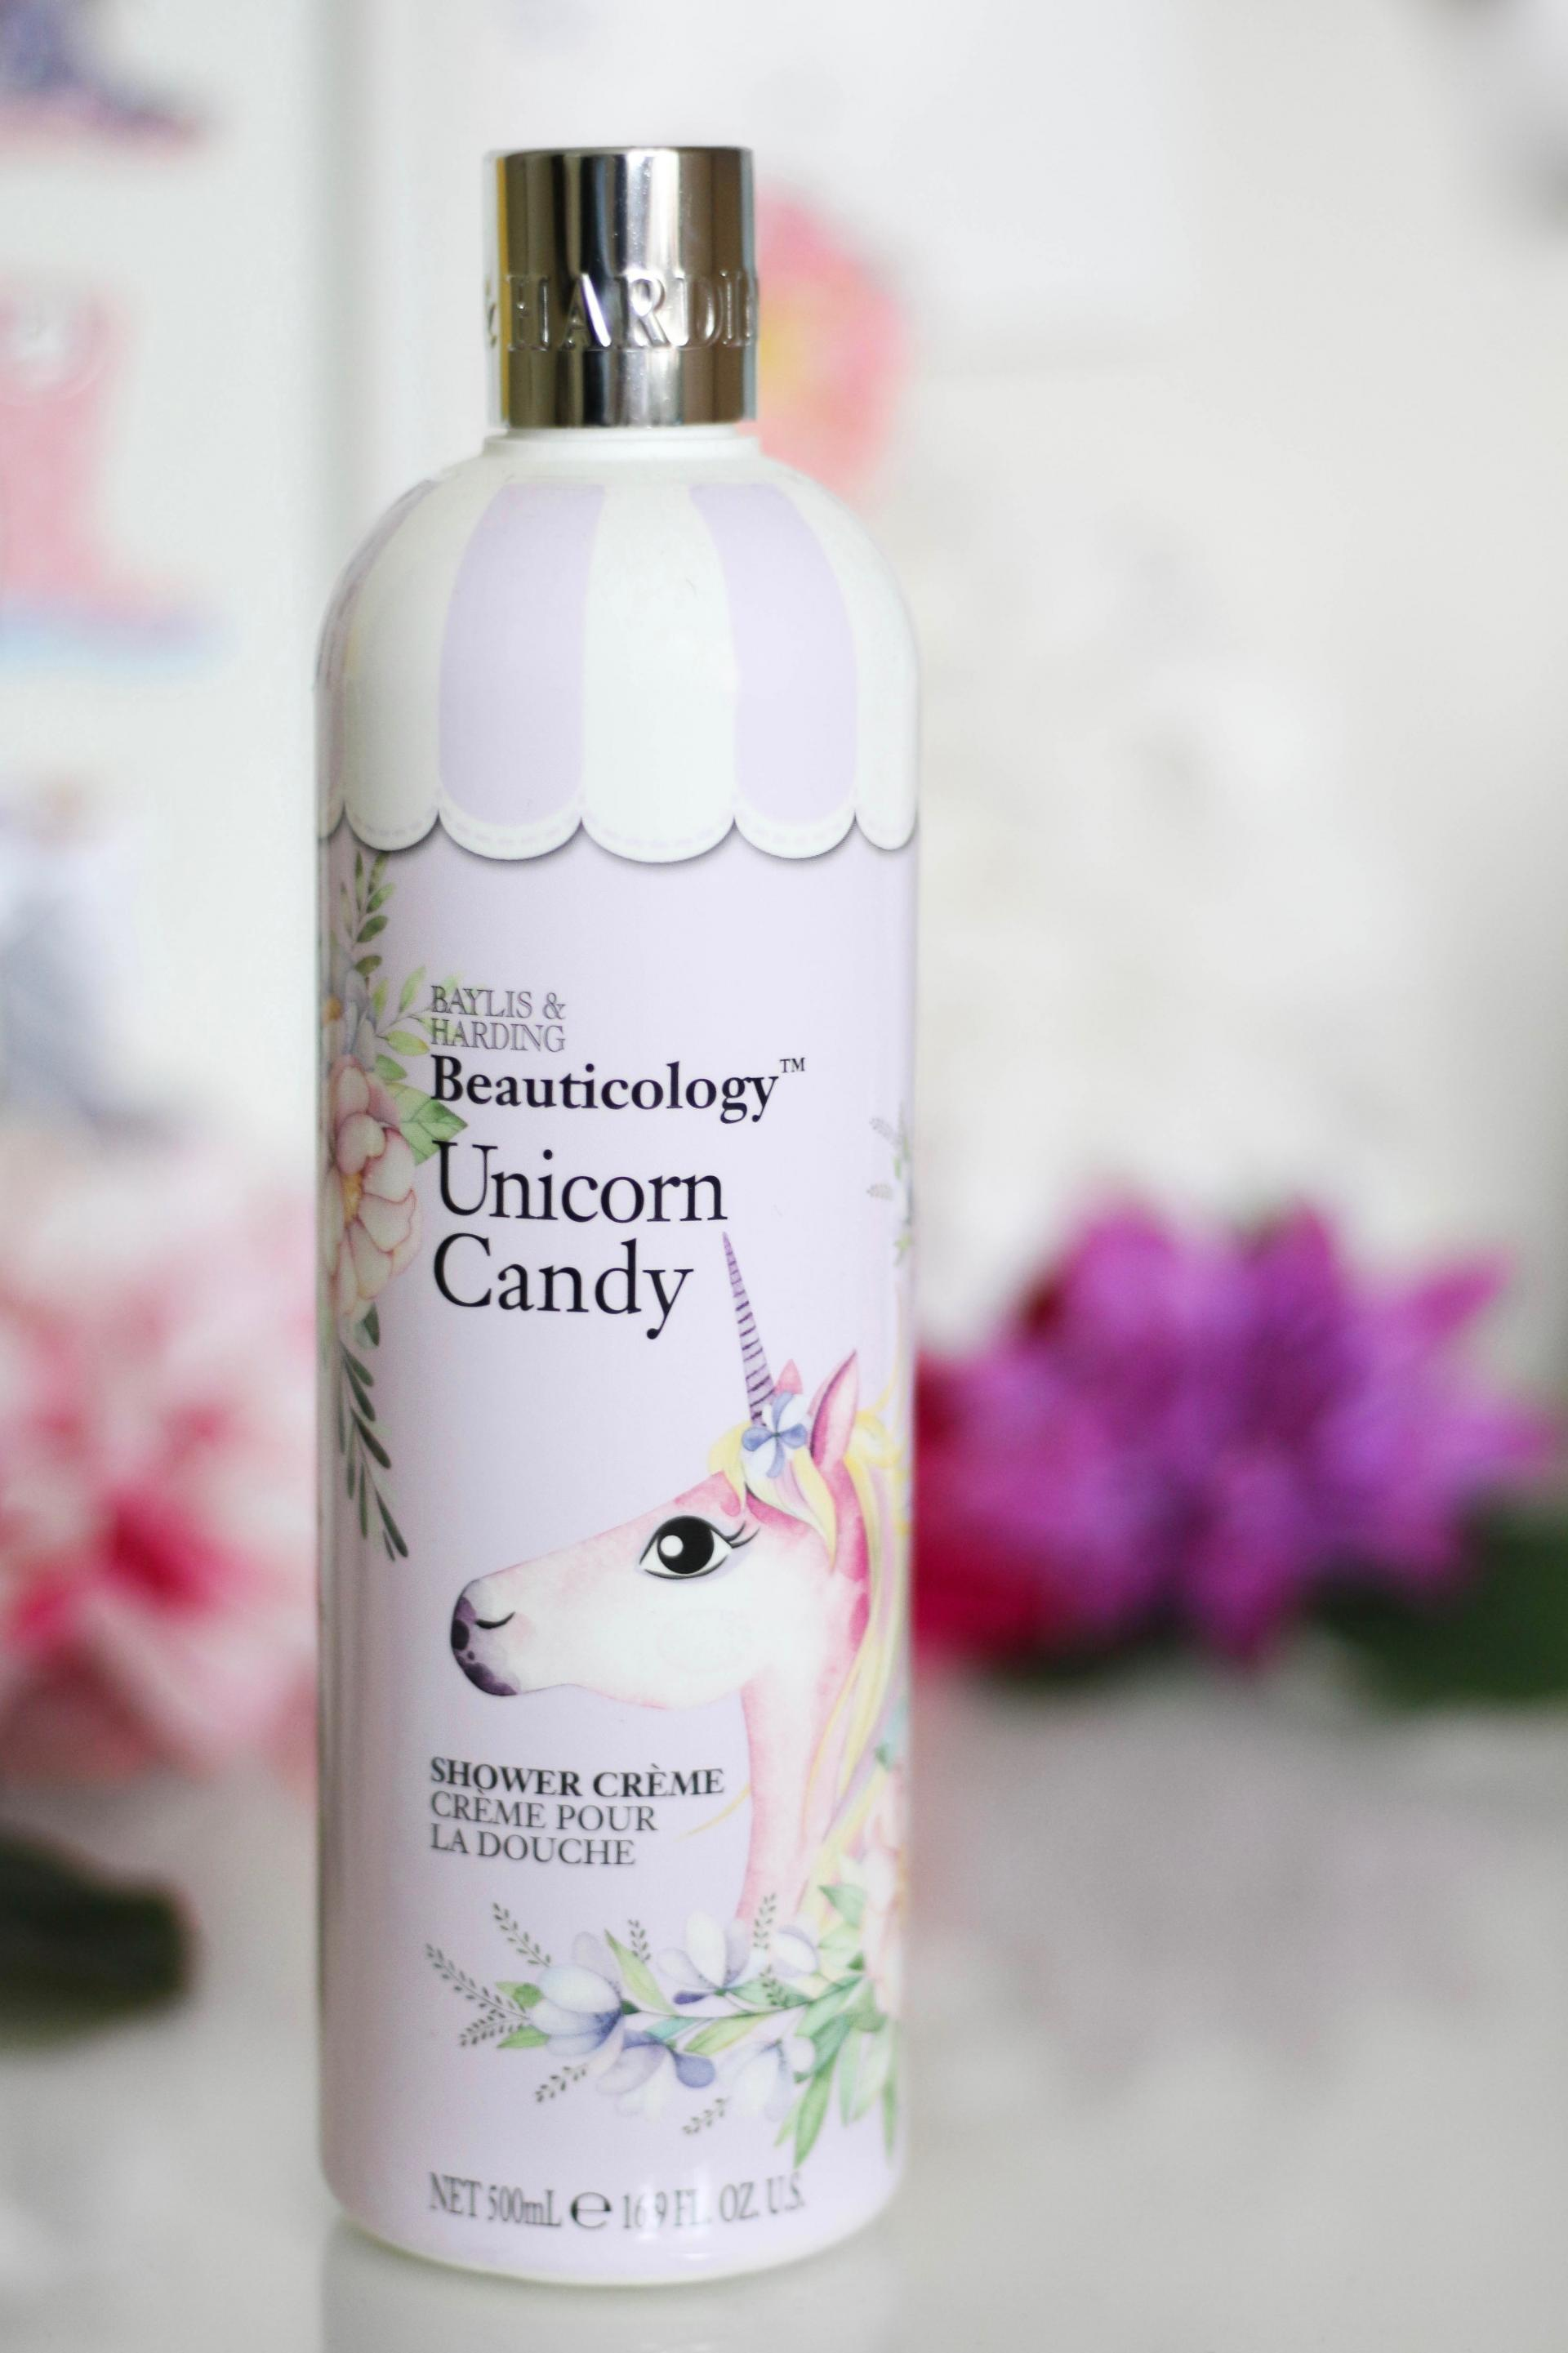 Baylis & Harding Beauticology Unicorn Candy Shower Creme